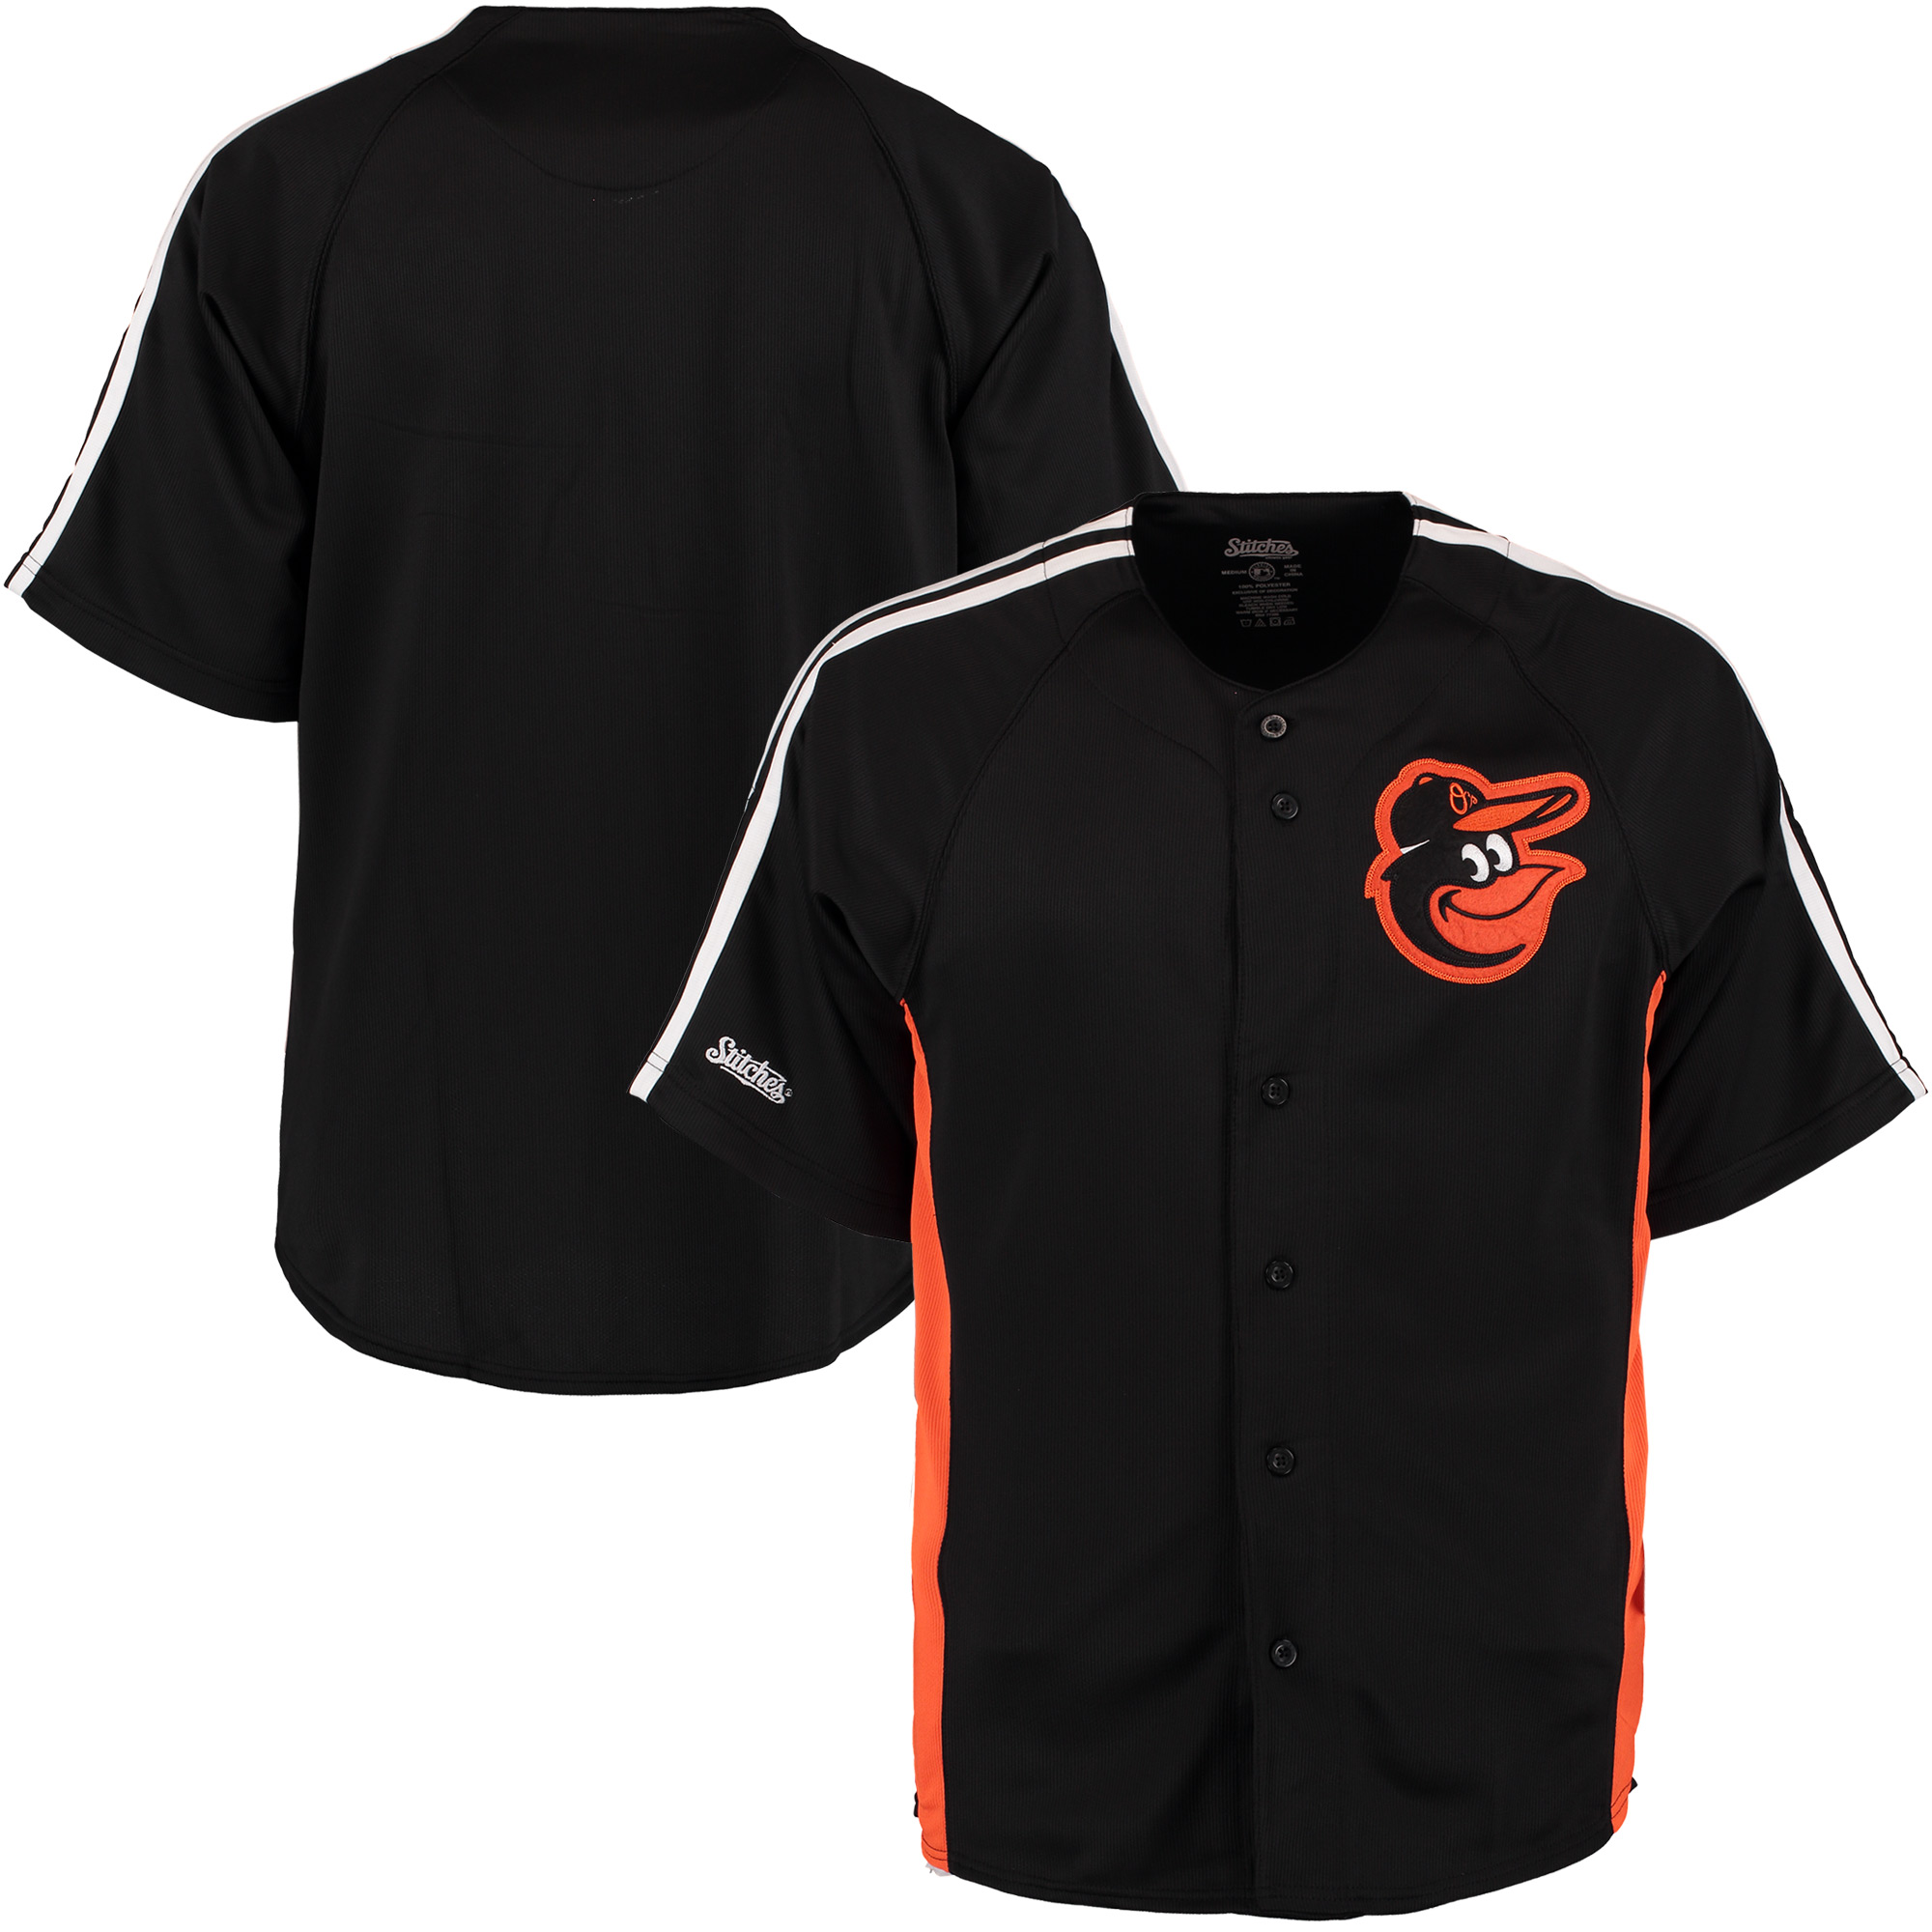 Baltimore Orioles Stitches Cut off Man Fashion Full Button Jersey - Black